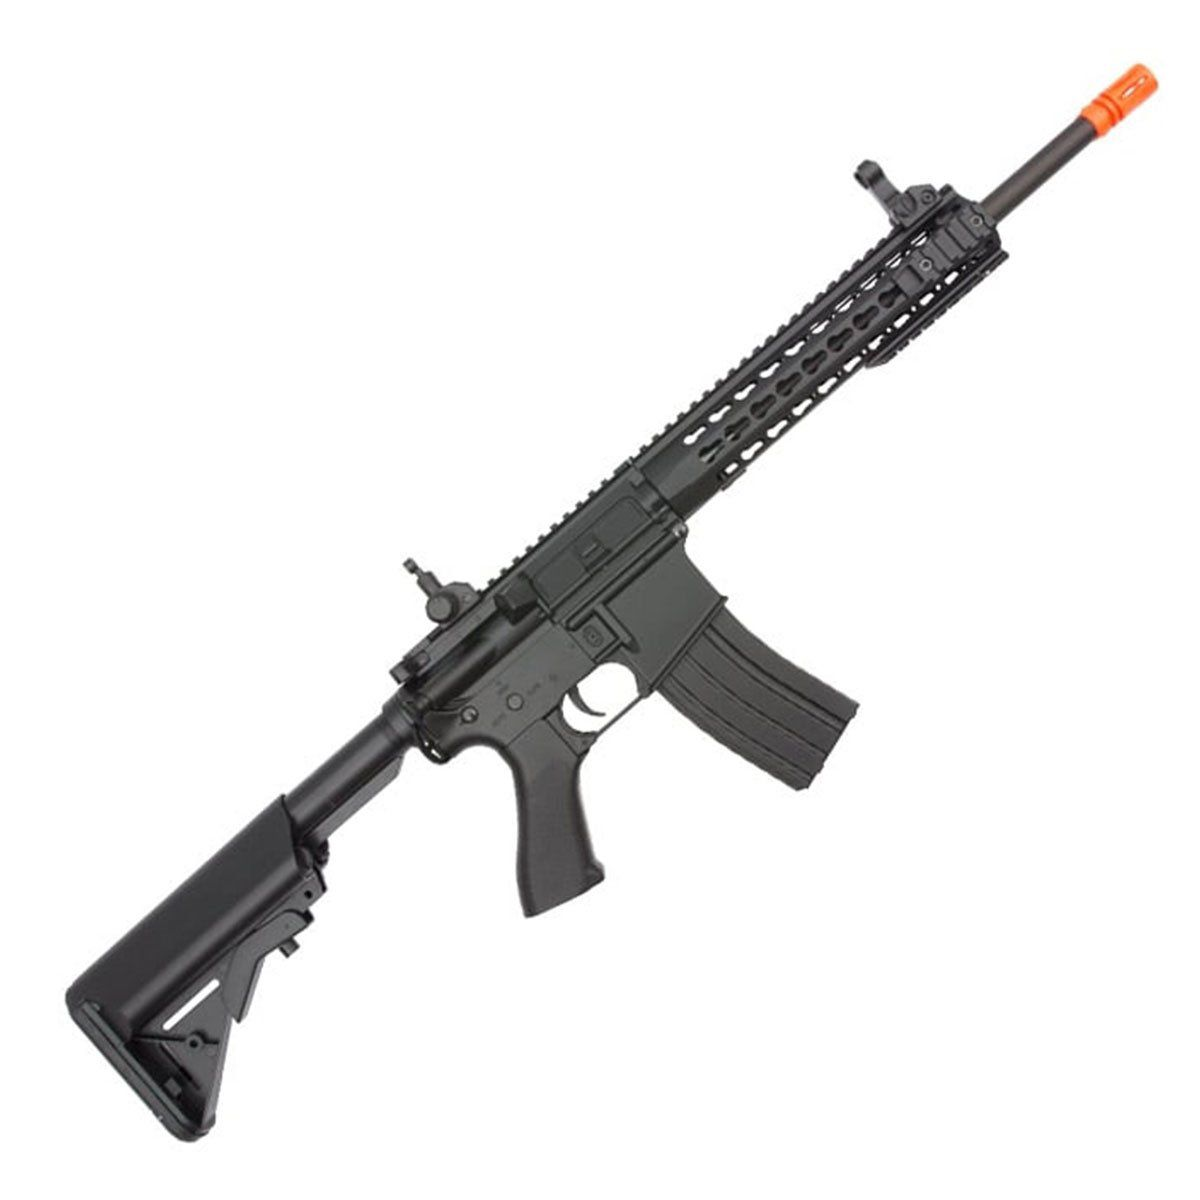 Rifle de Airsoft Cyma M4A1 CM515 Elétrico 6mm